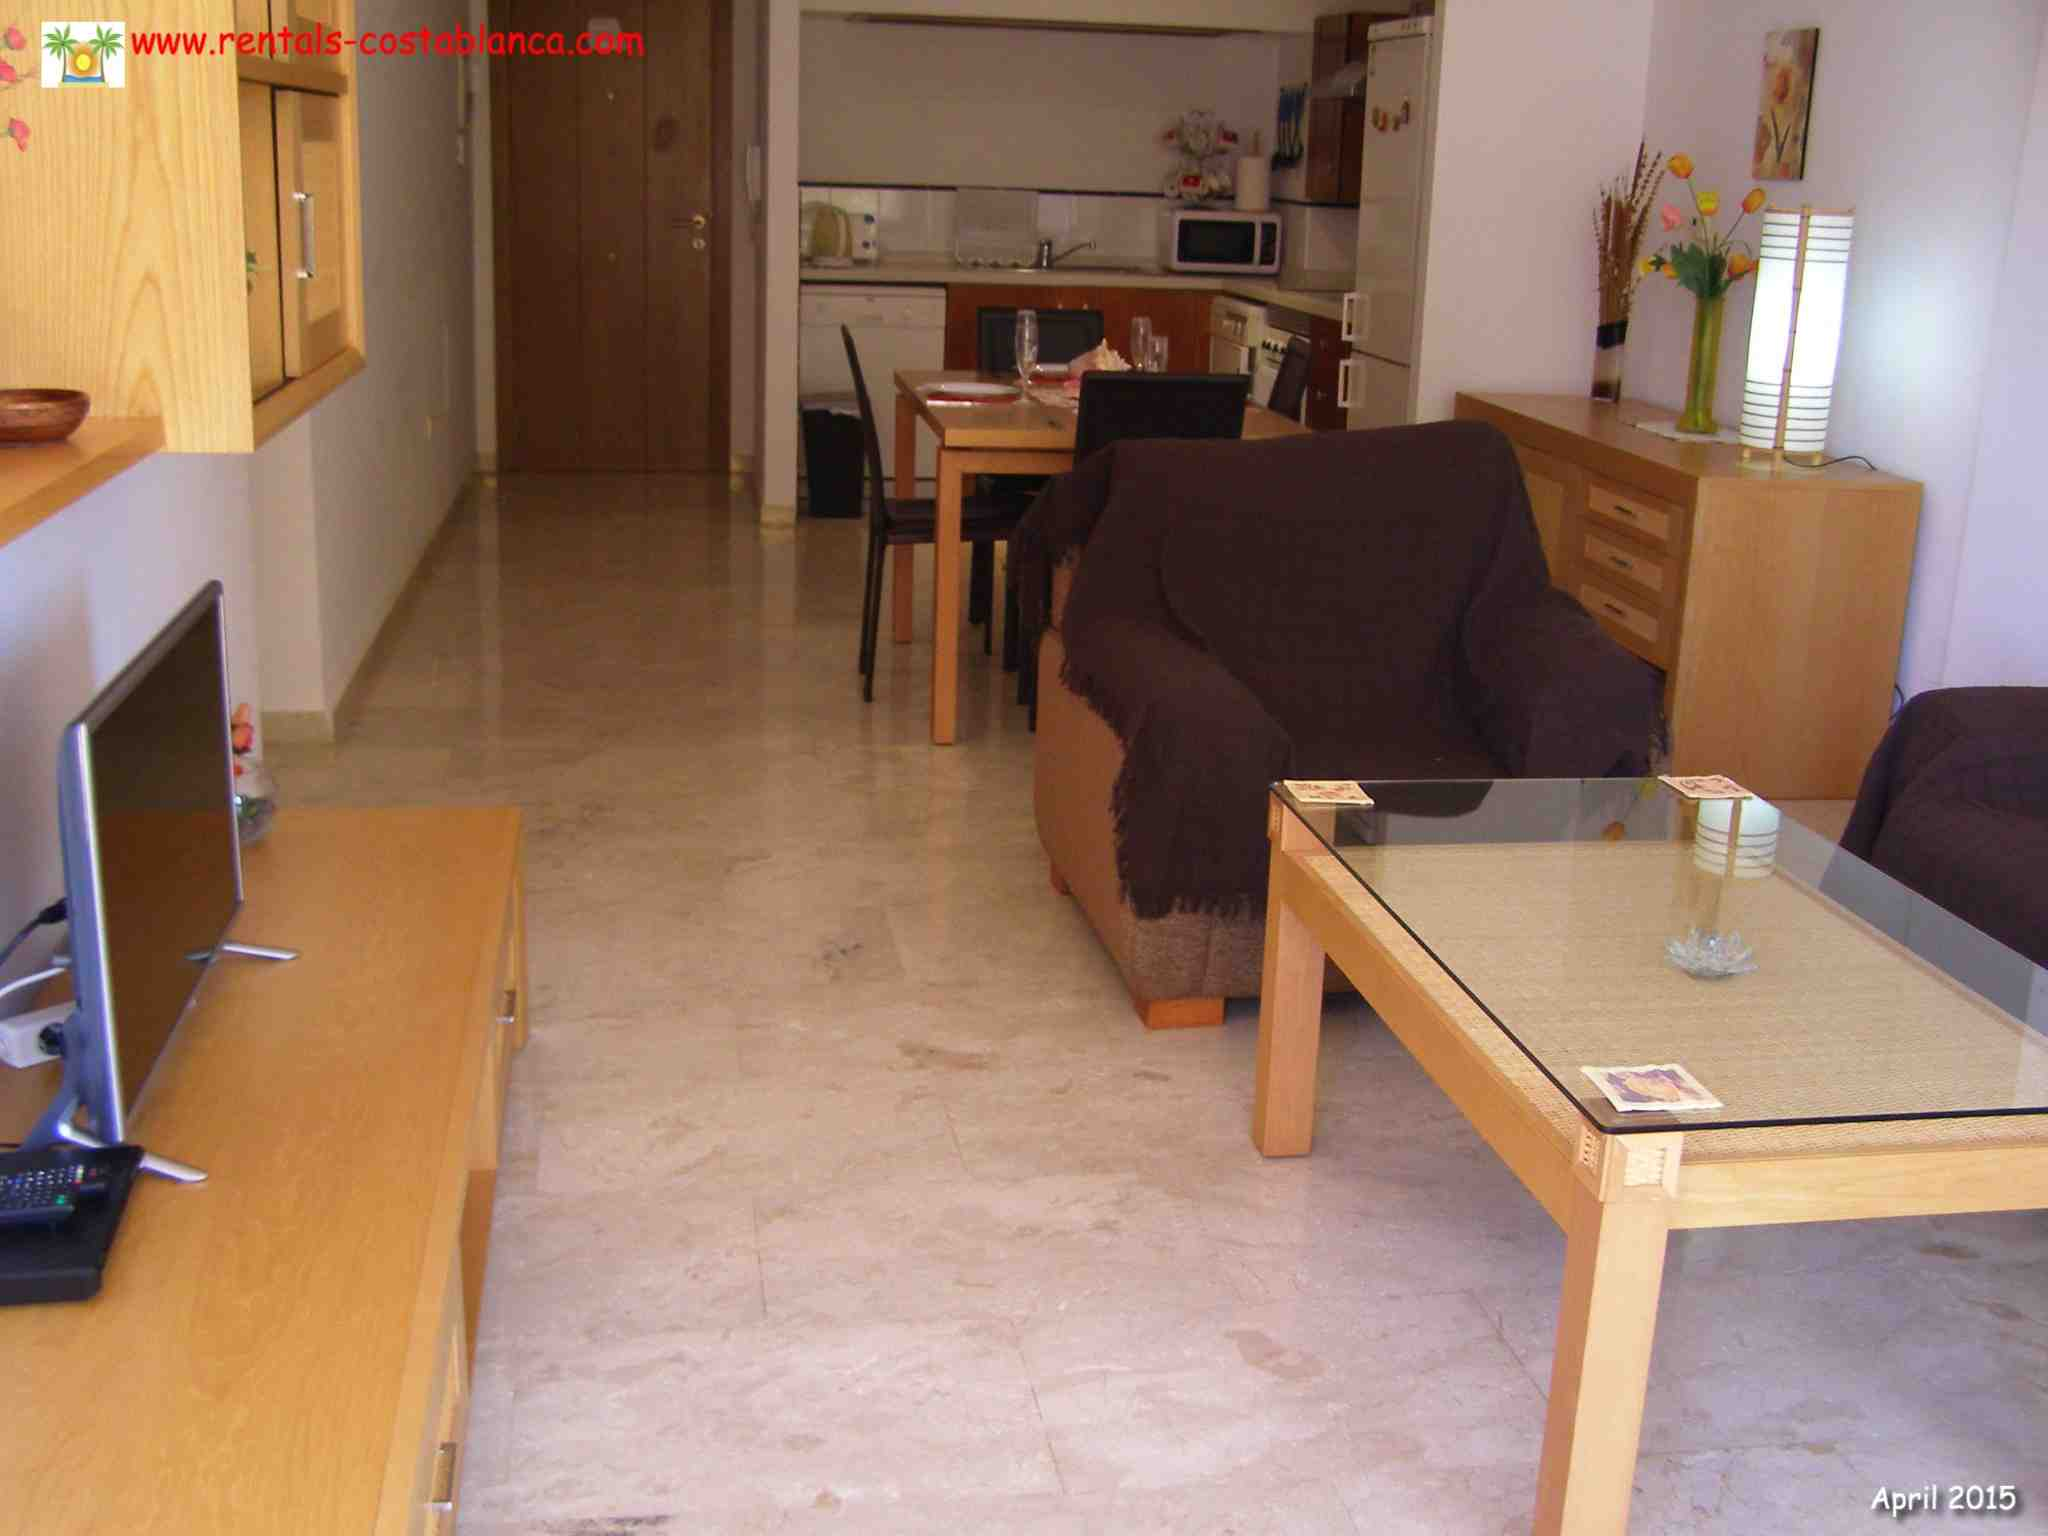 Holiday Rentals & Accommodation - Holiday Accommodation - Spain - Torrevieja / Alicante / Costa Blanca - Punta Prima / Torrevieja